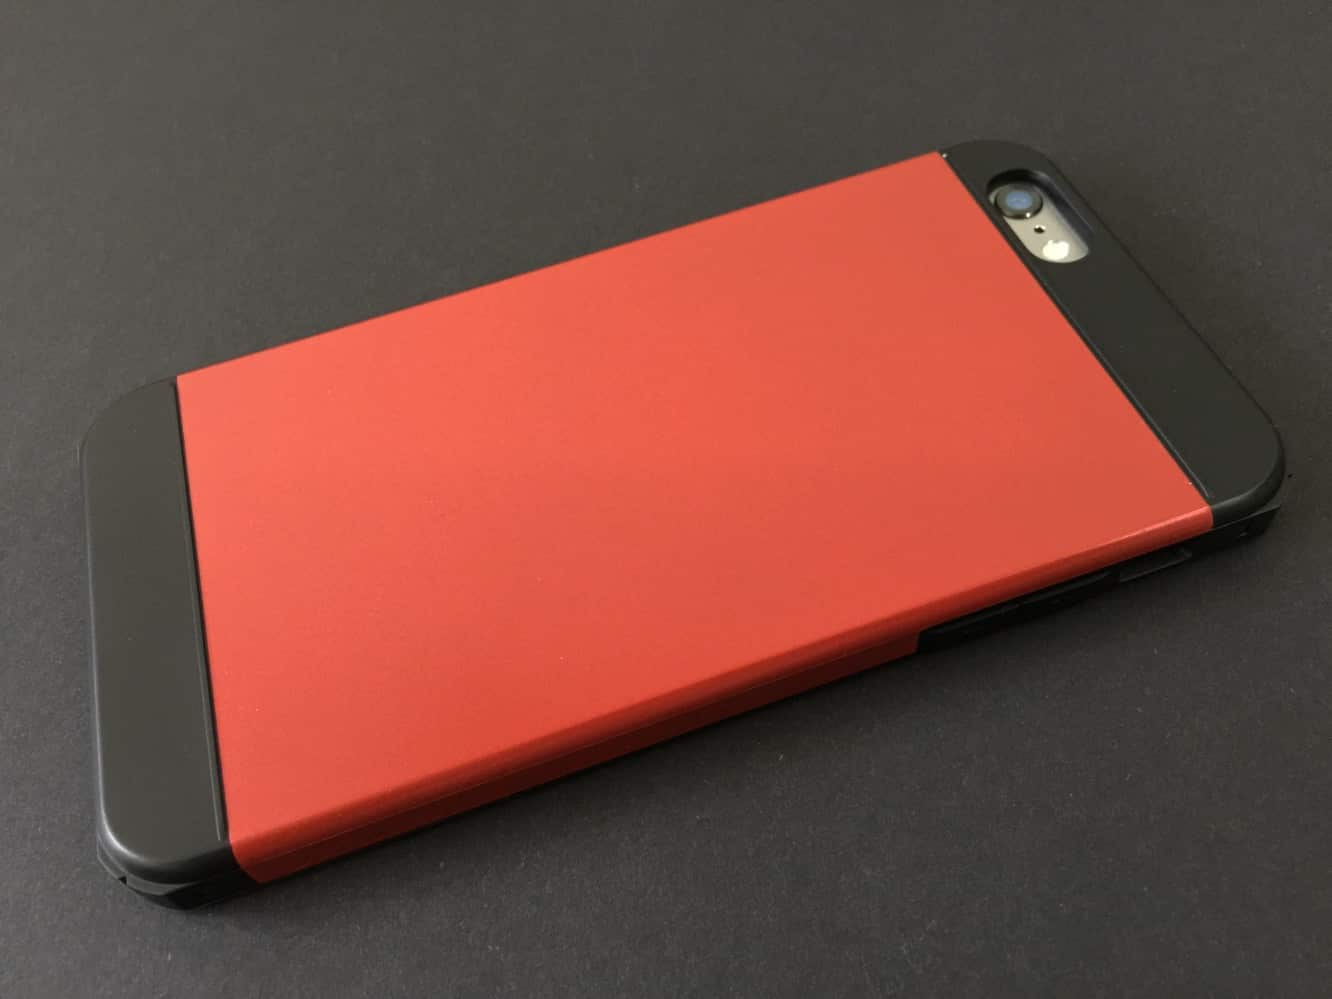 Review: RooCase Exec Tough for iPhone 6 Plus